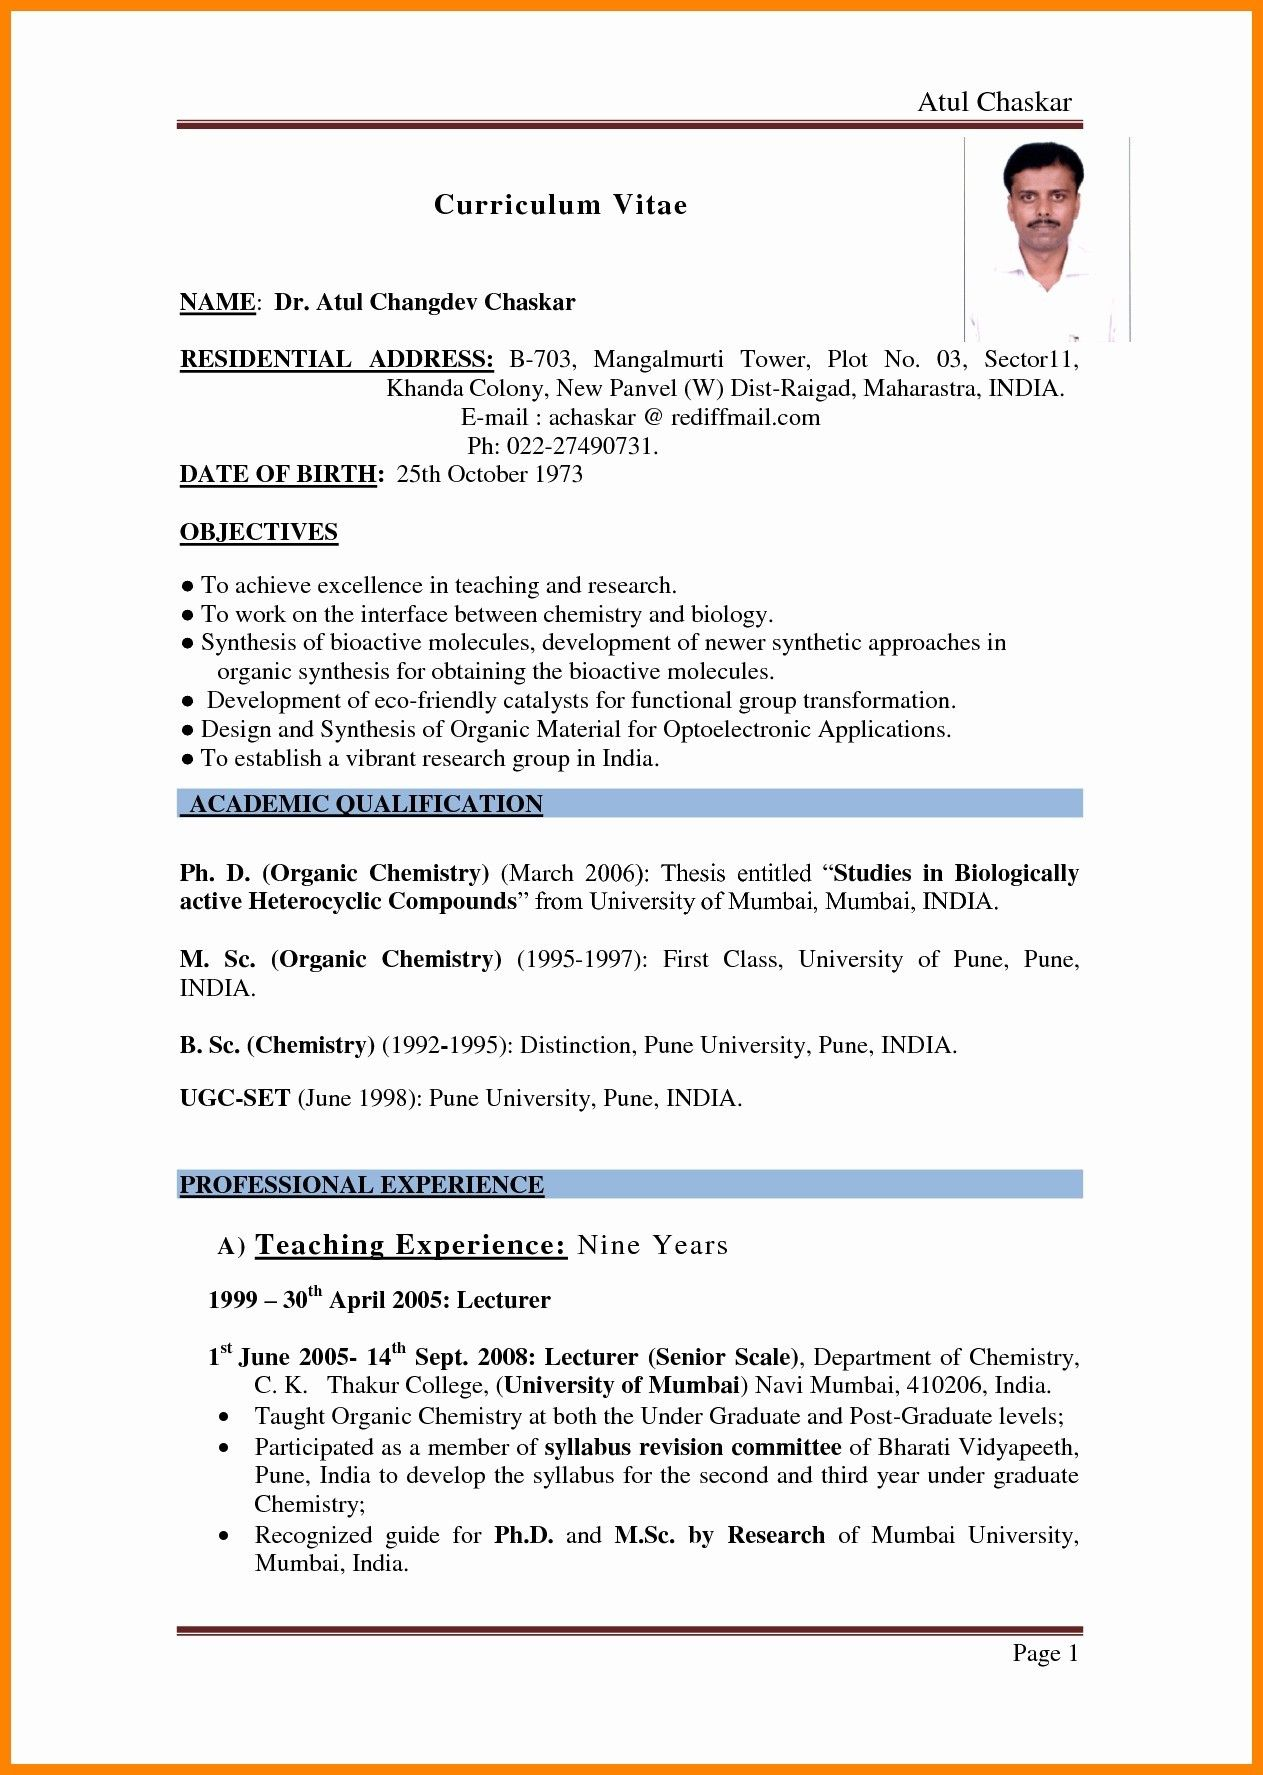 68 Elegant Collection Of Resume Samples for Teachers with